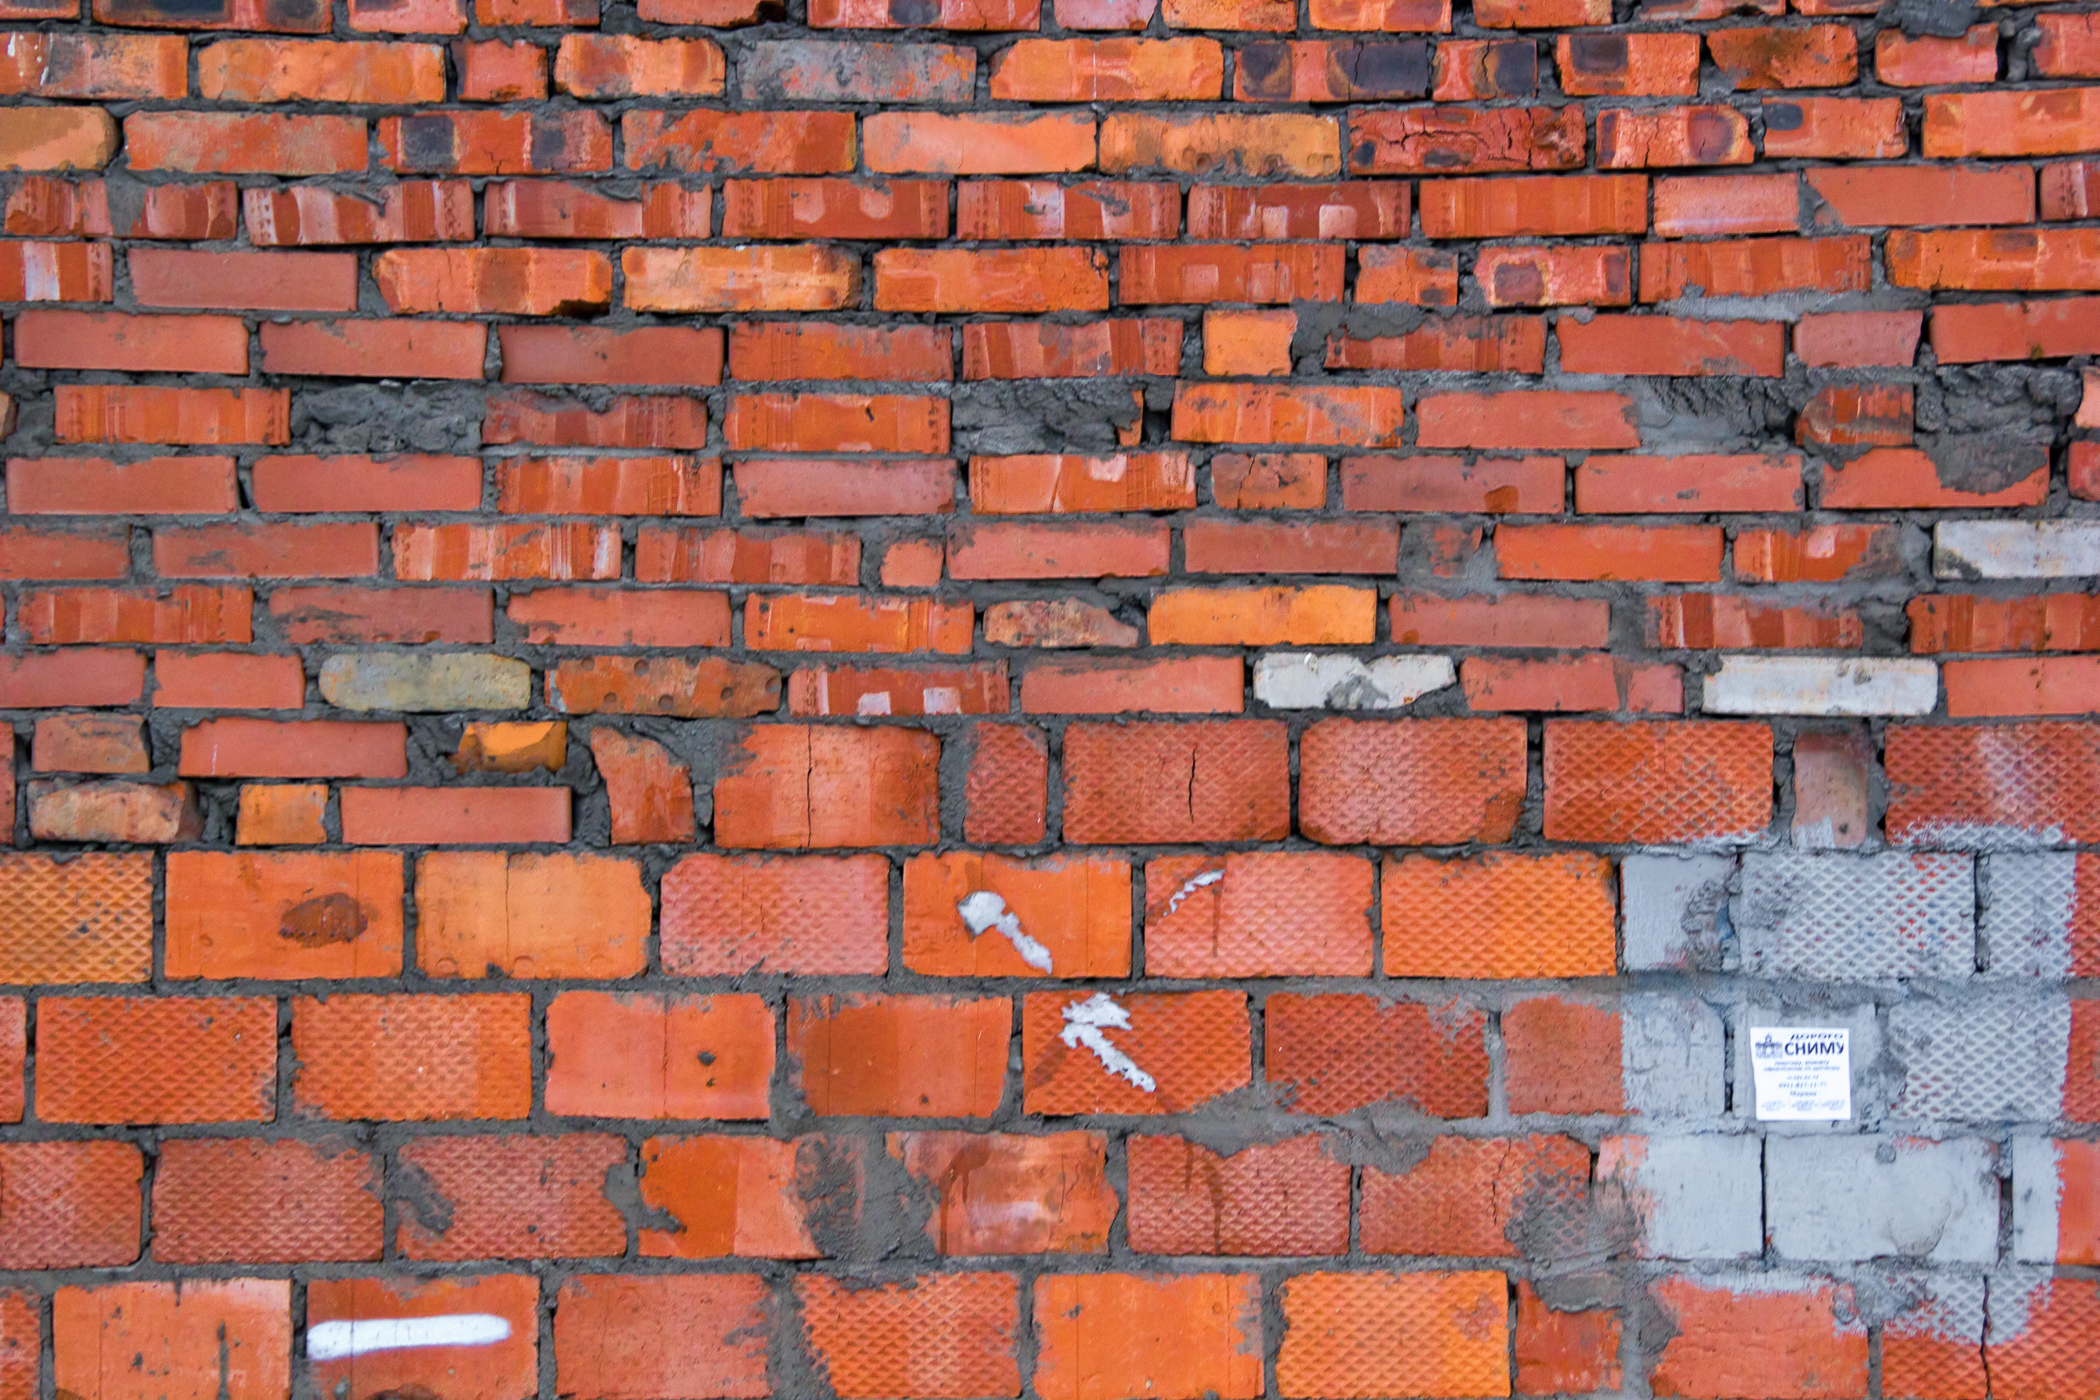 Brick wall, Backgrounds, Blocks, Blotch, Bricks, HQ Photo